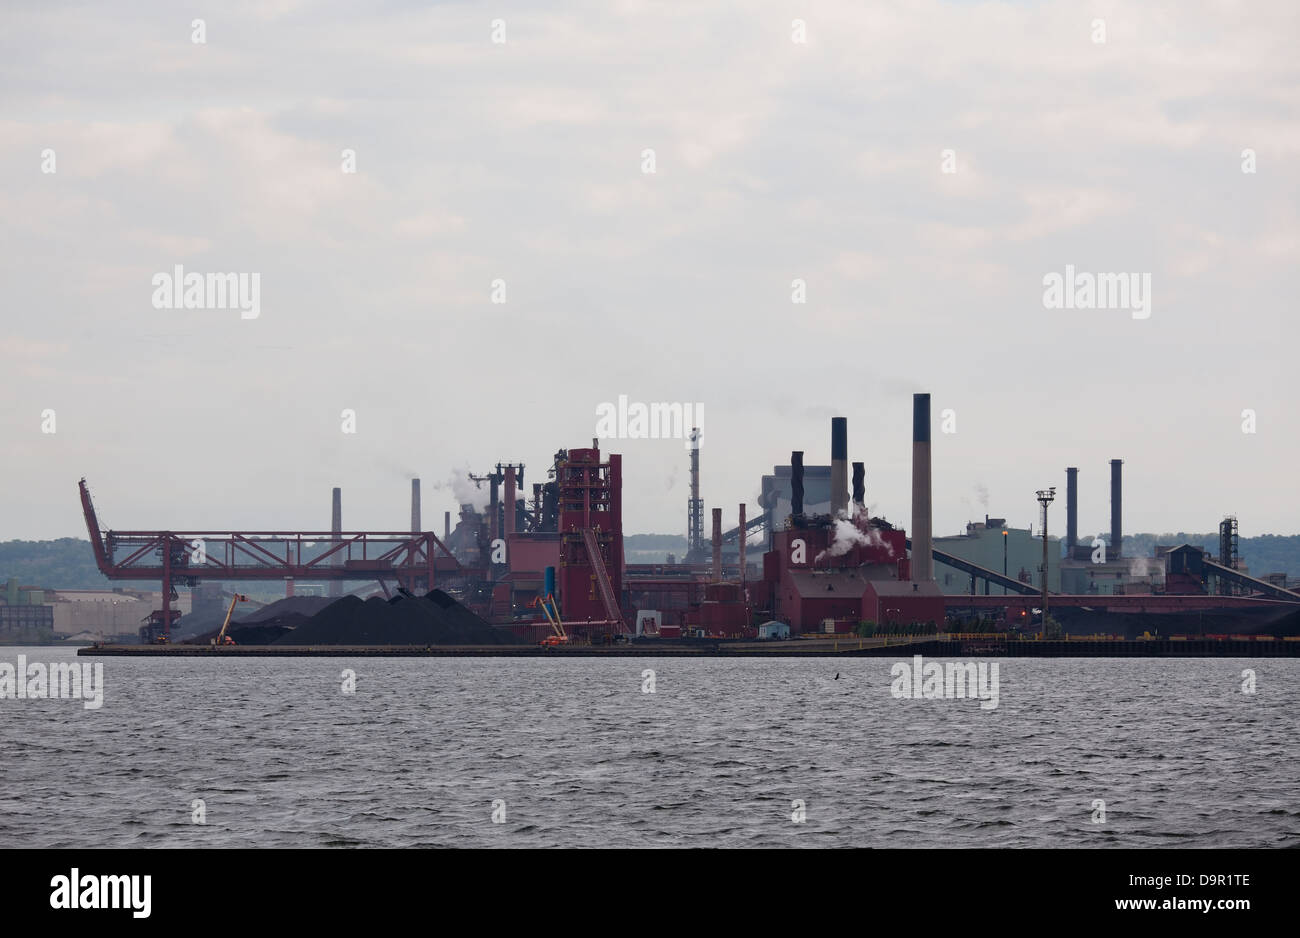 Heavy industry along Hamilton's waterfront on a hazy afternoon, Hamilton, Ontario, Canada. - Stock Image